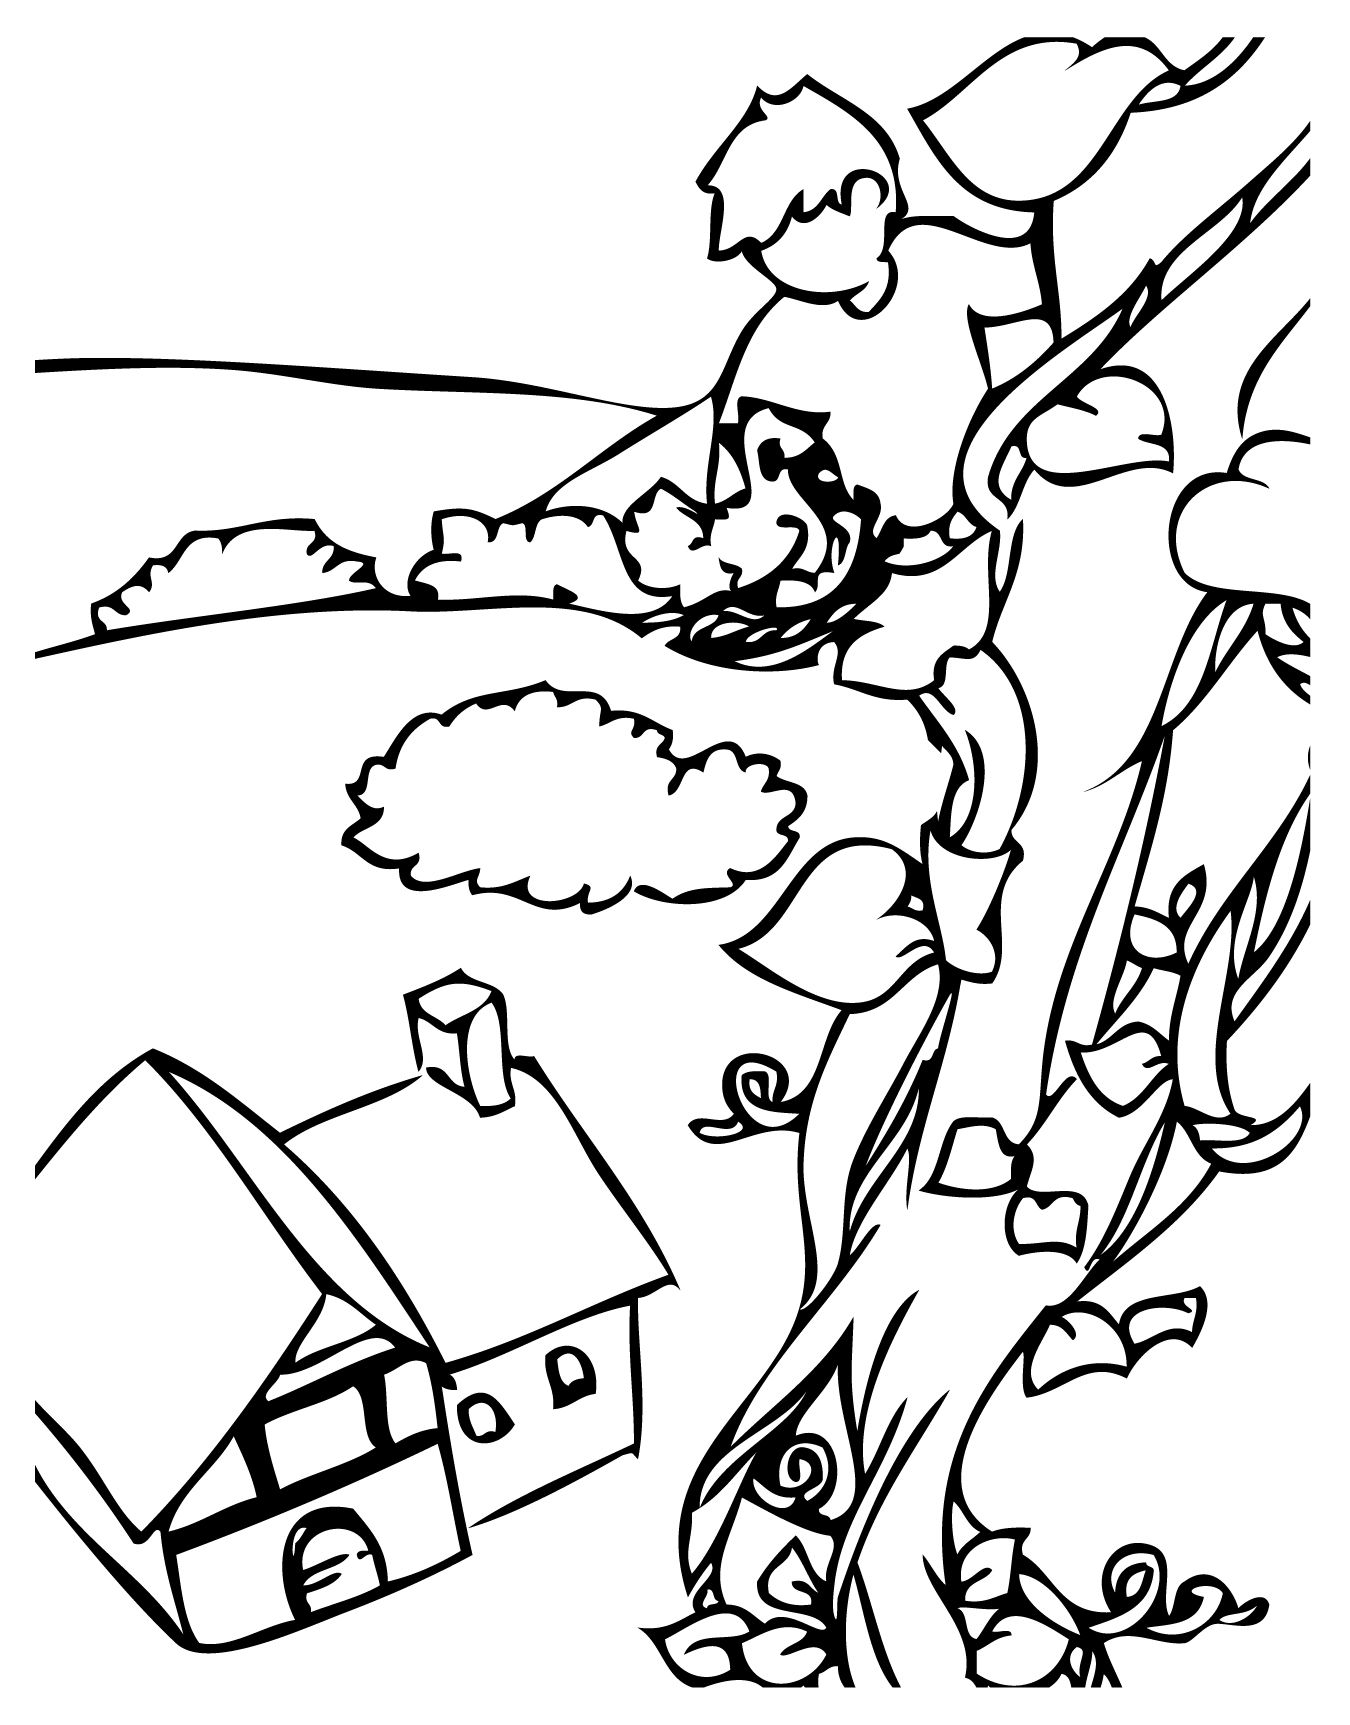 Jack And The Beanstalk Coloring Page Handipoints Clipart Best Clipart Best Coloring Pages Fall Coloring Pages Coloring Posters